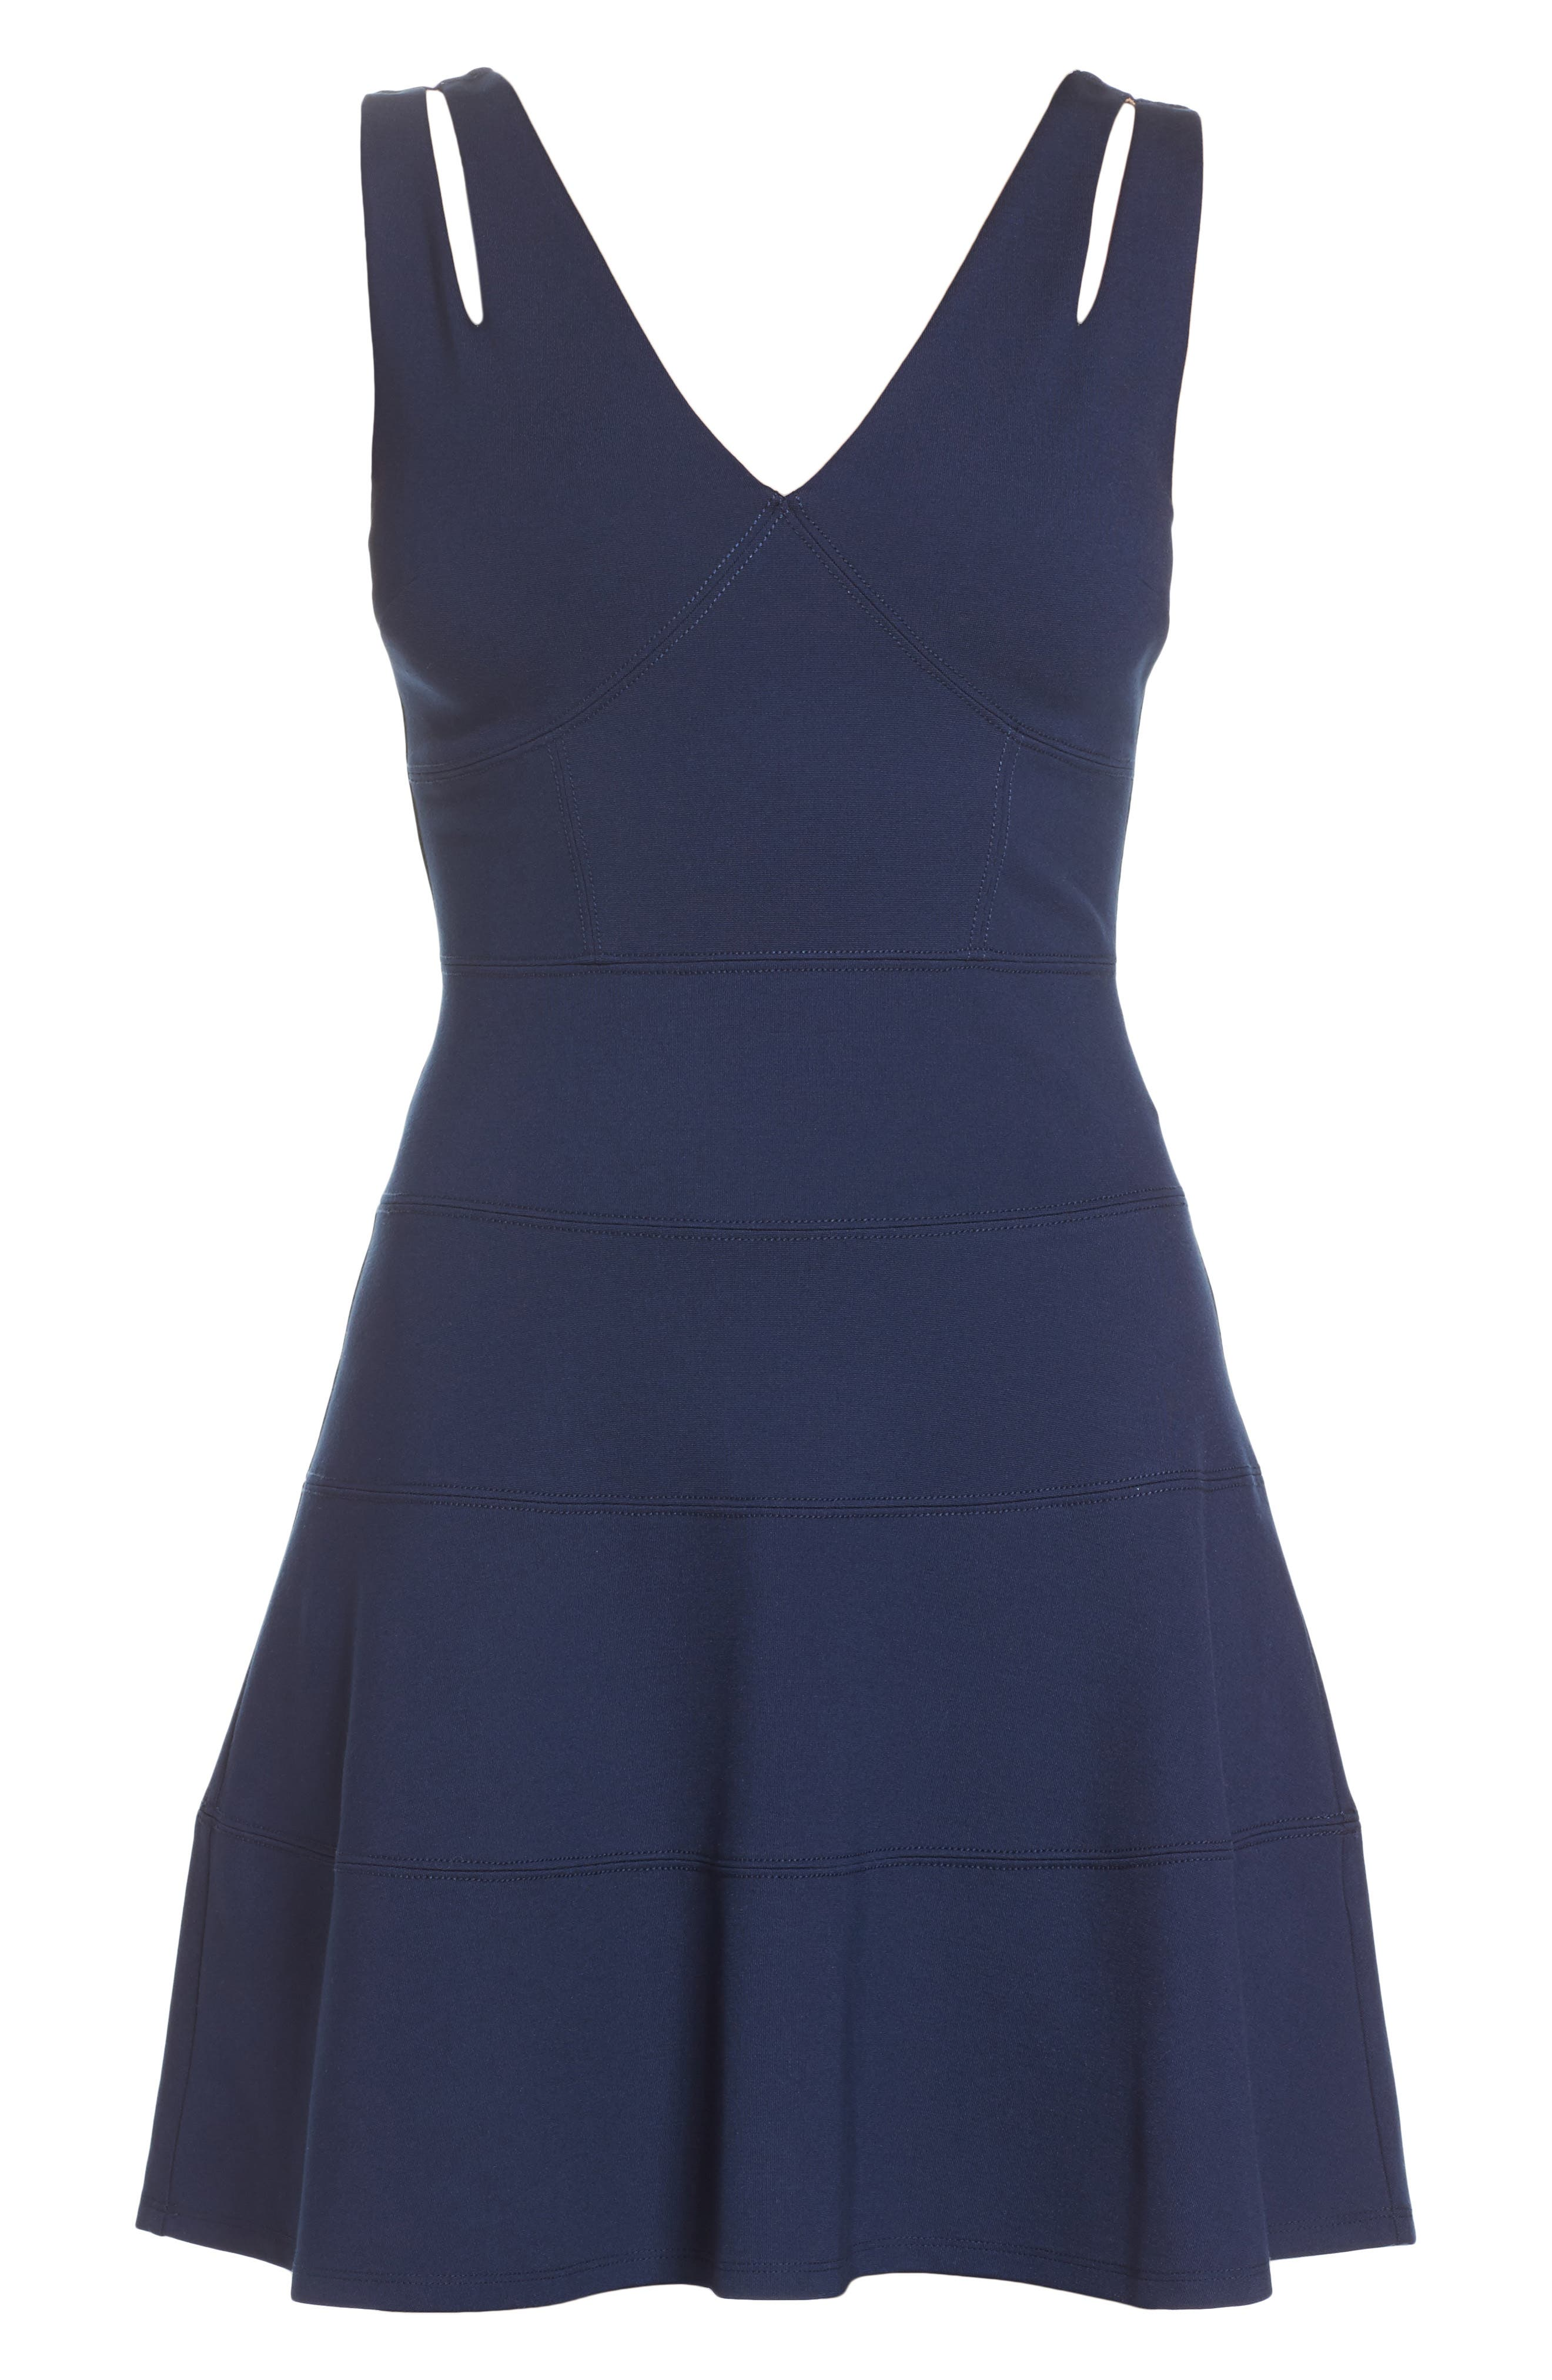 Lace Back Fit & Flare Dress,                             Alternate thumbnail 7, color,                             Navy